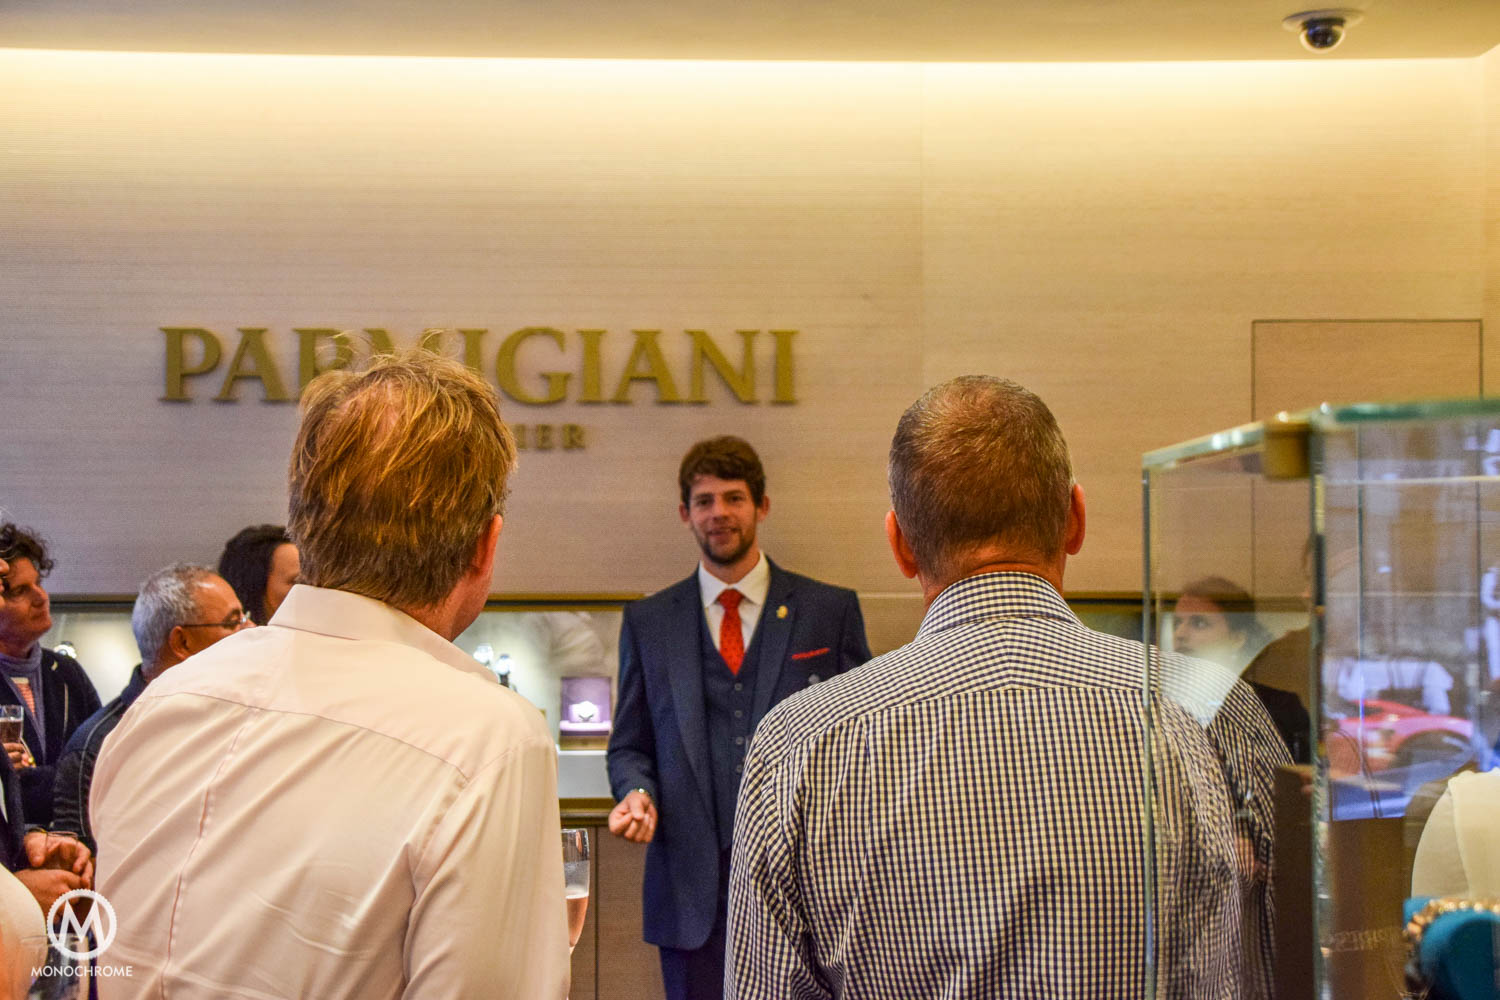 parmigiani-boutique-event-0792